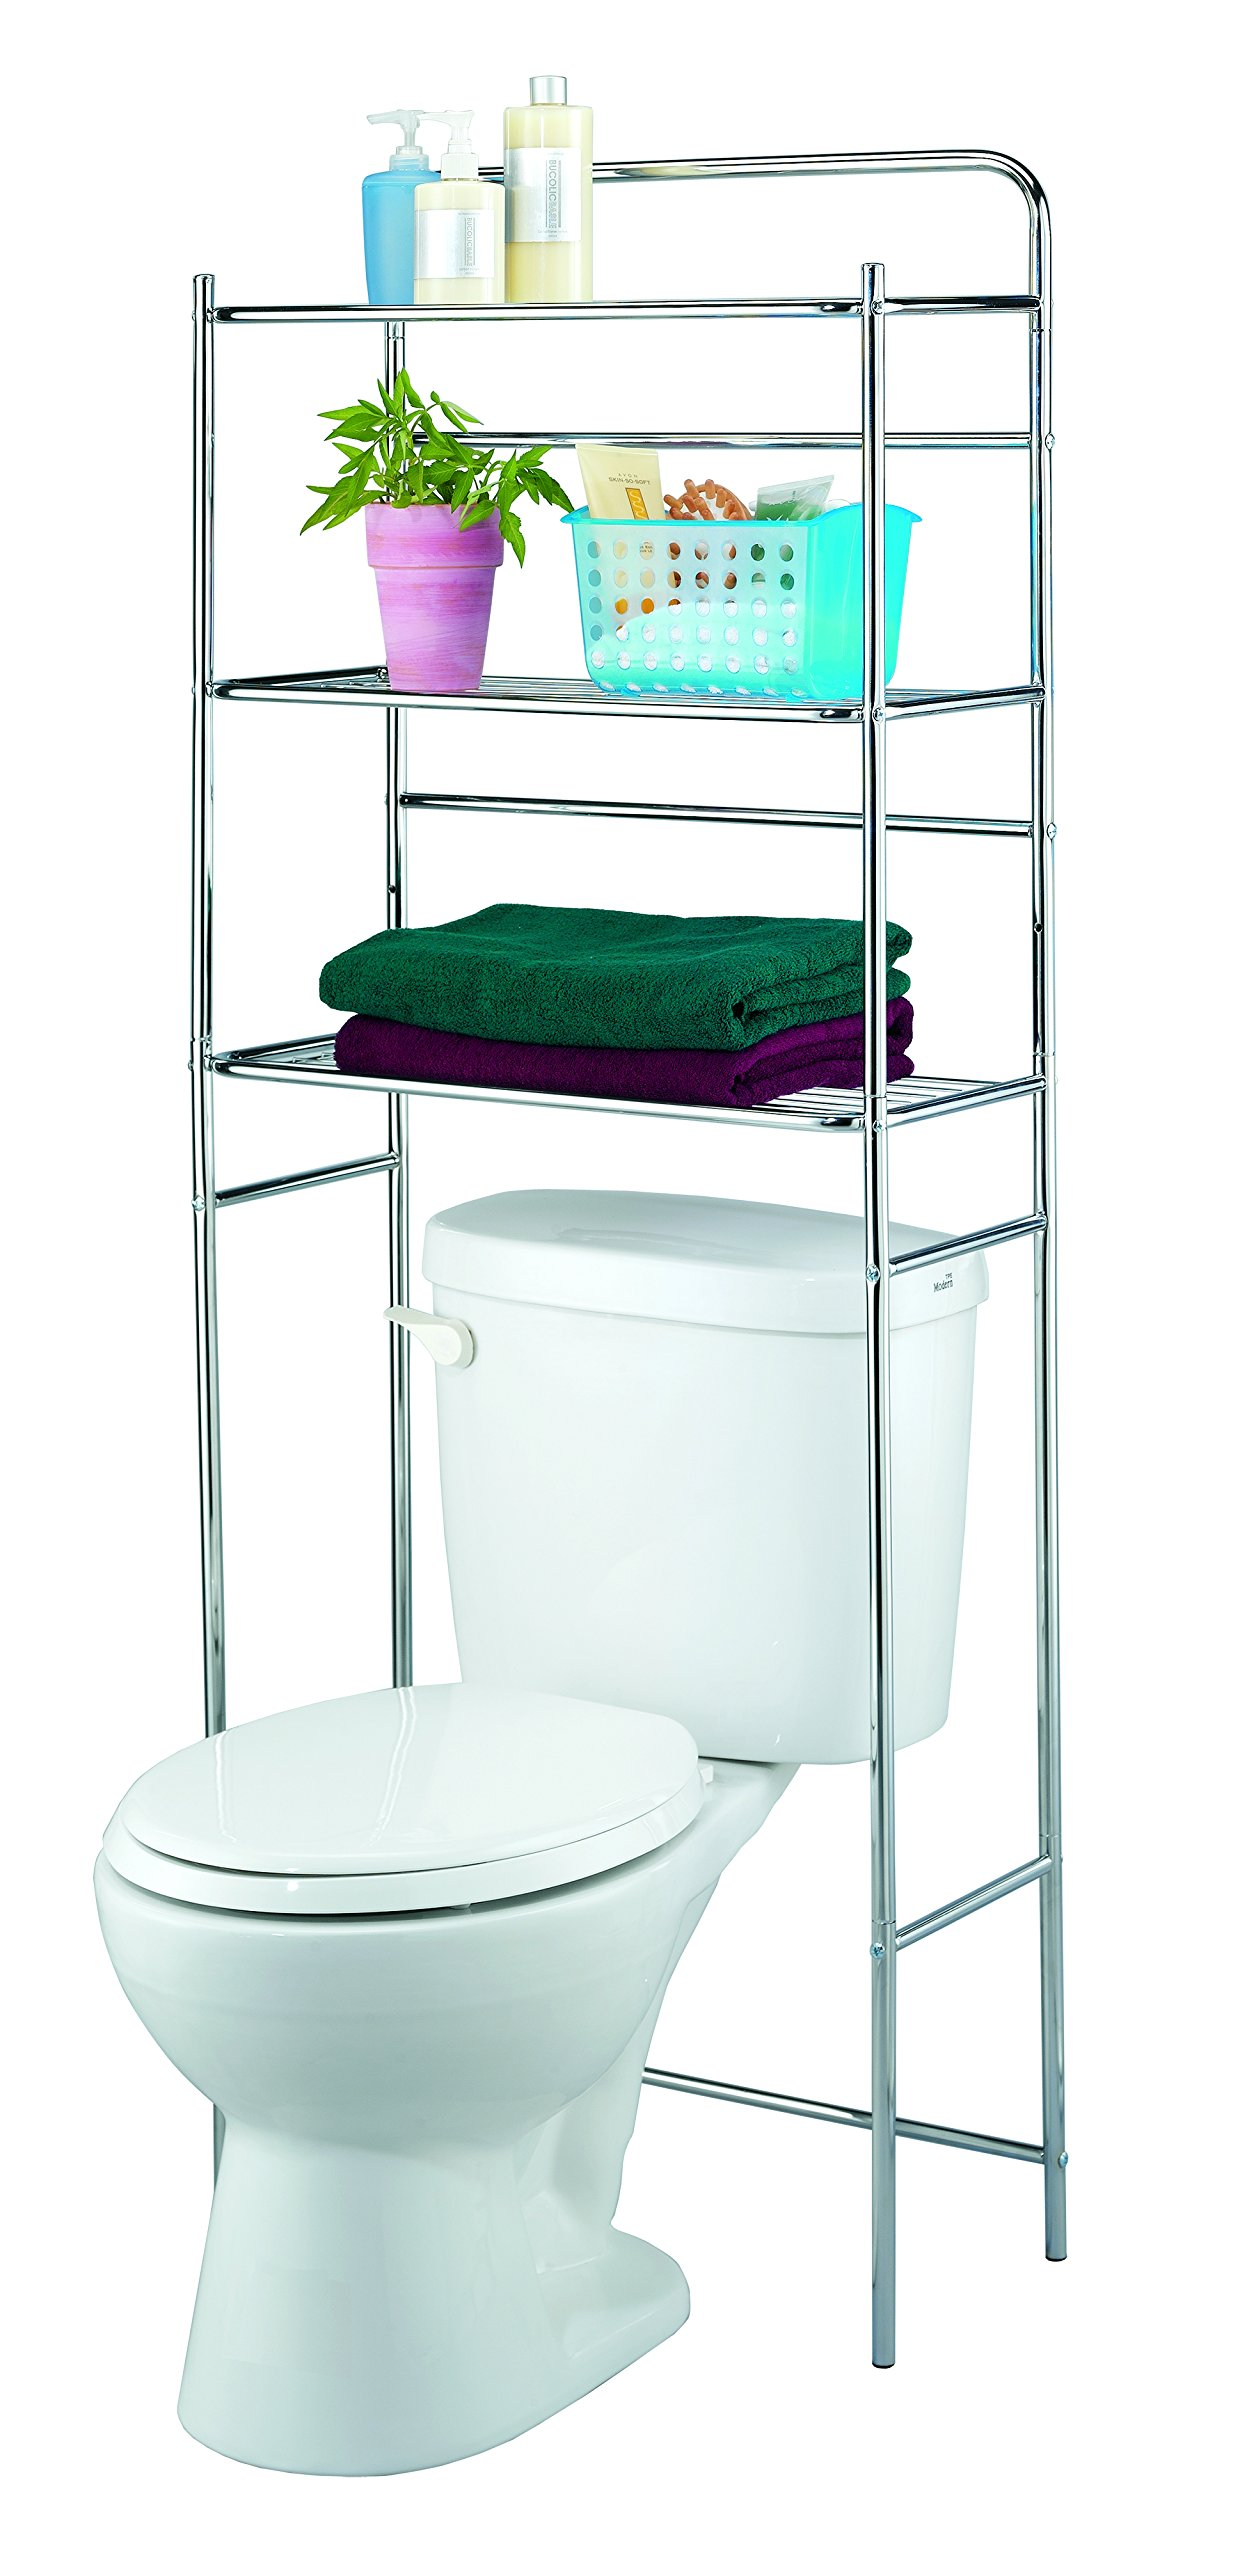 Finnhomy 3 Shelf Bathroom Space Saver Over Toilet Rack Bathroom Corner Stand Storage Organizer Accessories Bathroom Cabinet Tower Shelf Metal Stainless Steel with Chrome Finish 23.5''W x 10''D x 60''H